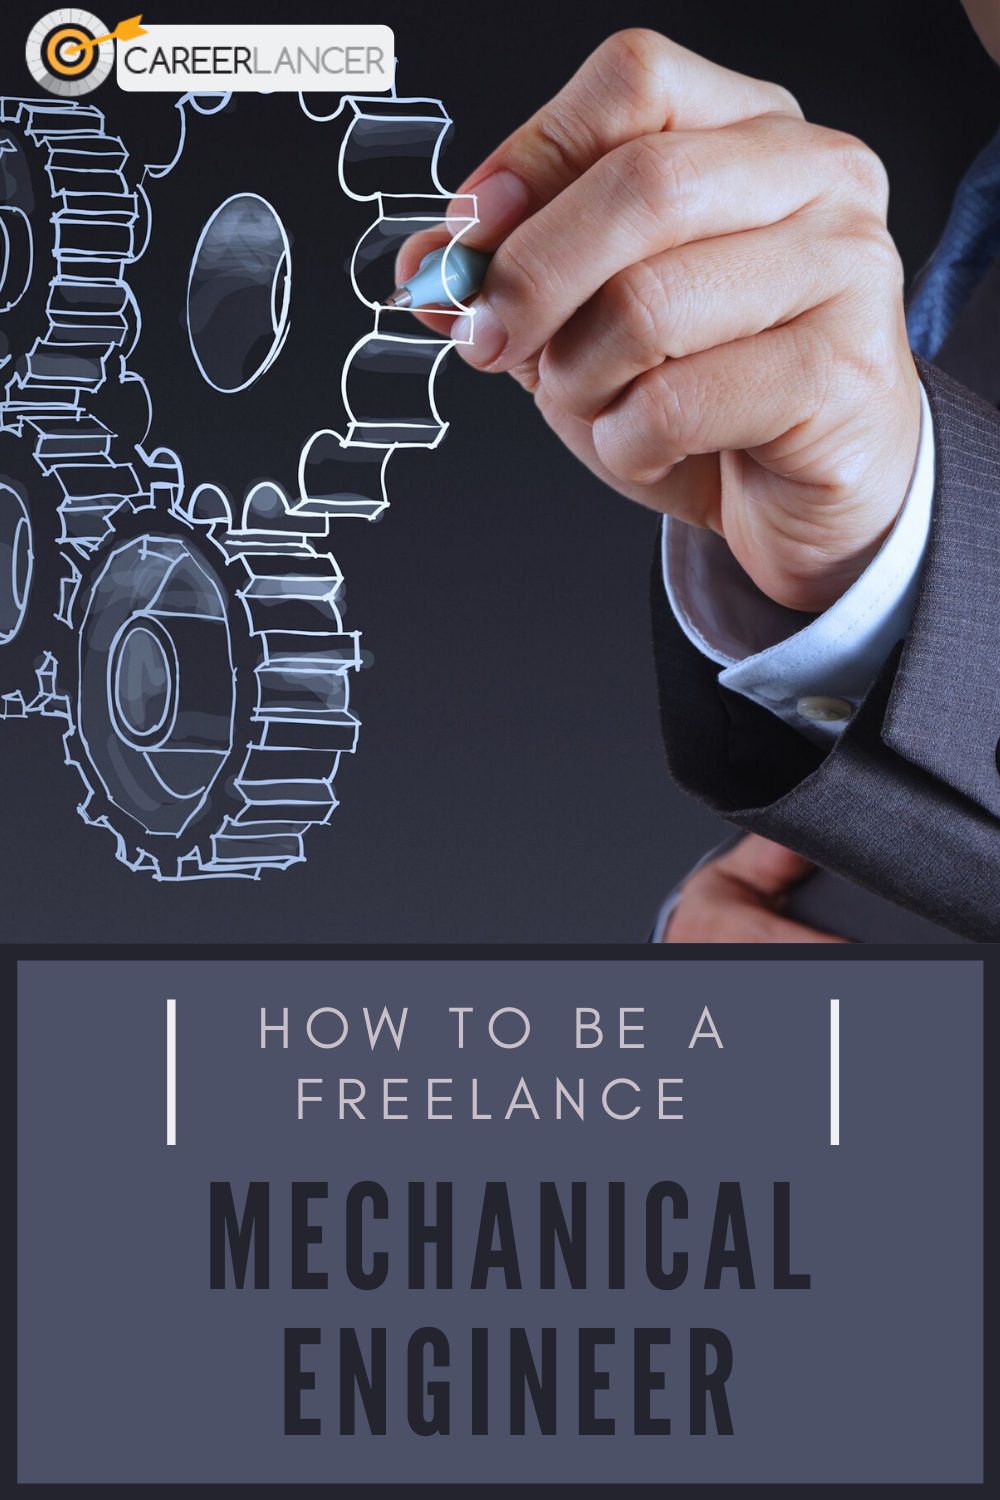 How To Be A Freelance Mechanical Engineer Careerlancer Mechanical Engineering Freelancing Jobs Freelance